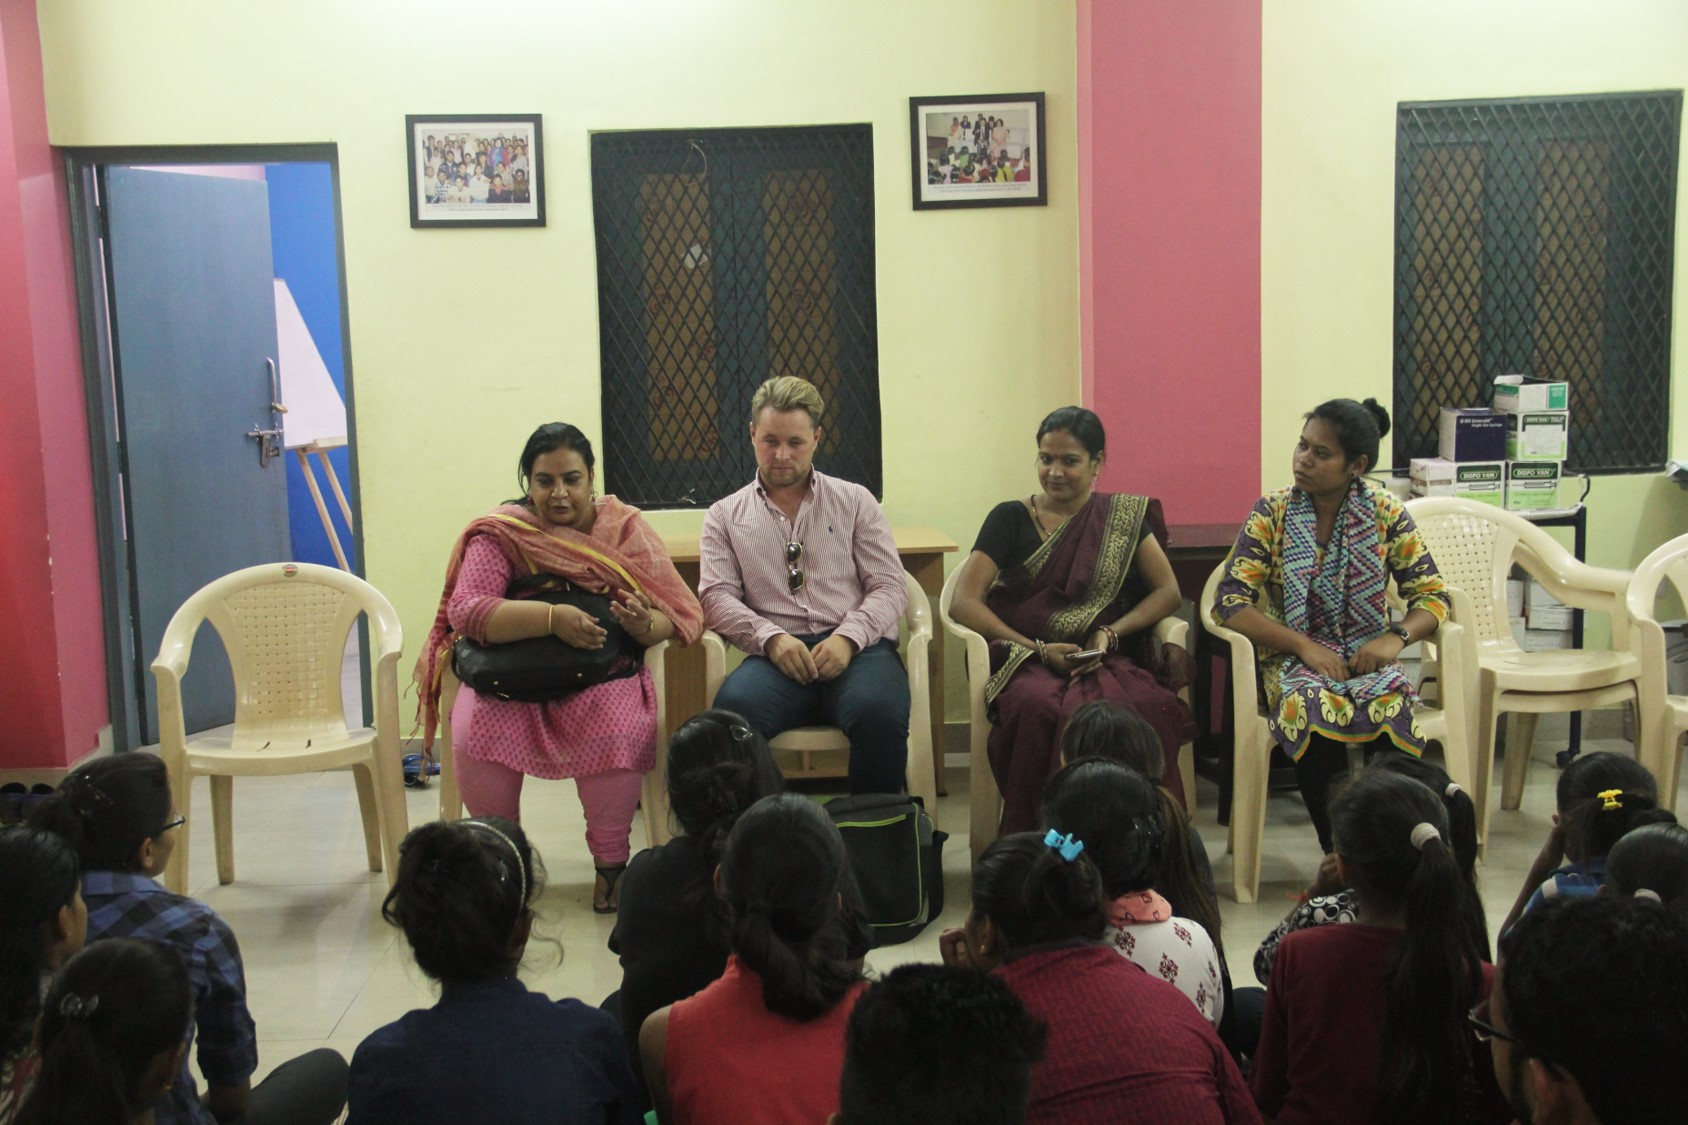 Alex Reese interacting with the Children's Association members at Ekta Vihar slum colony